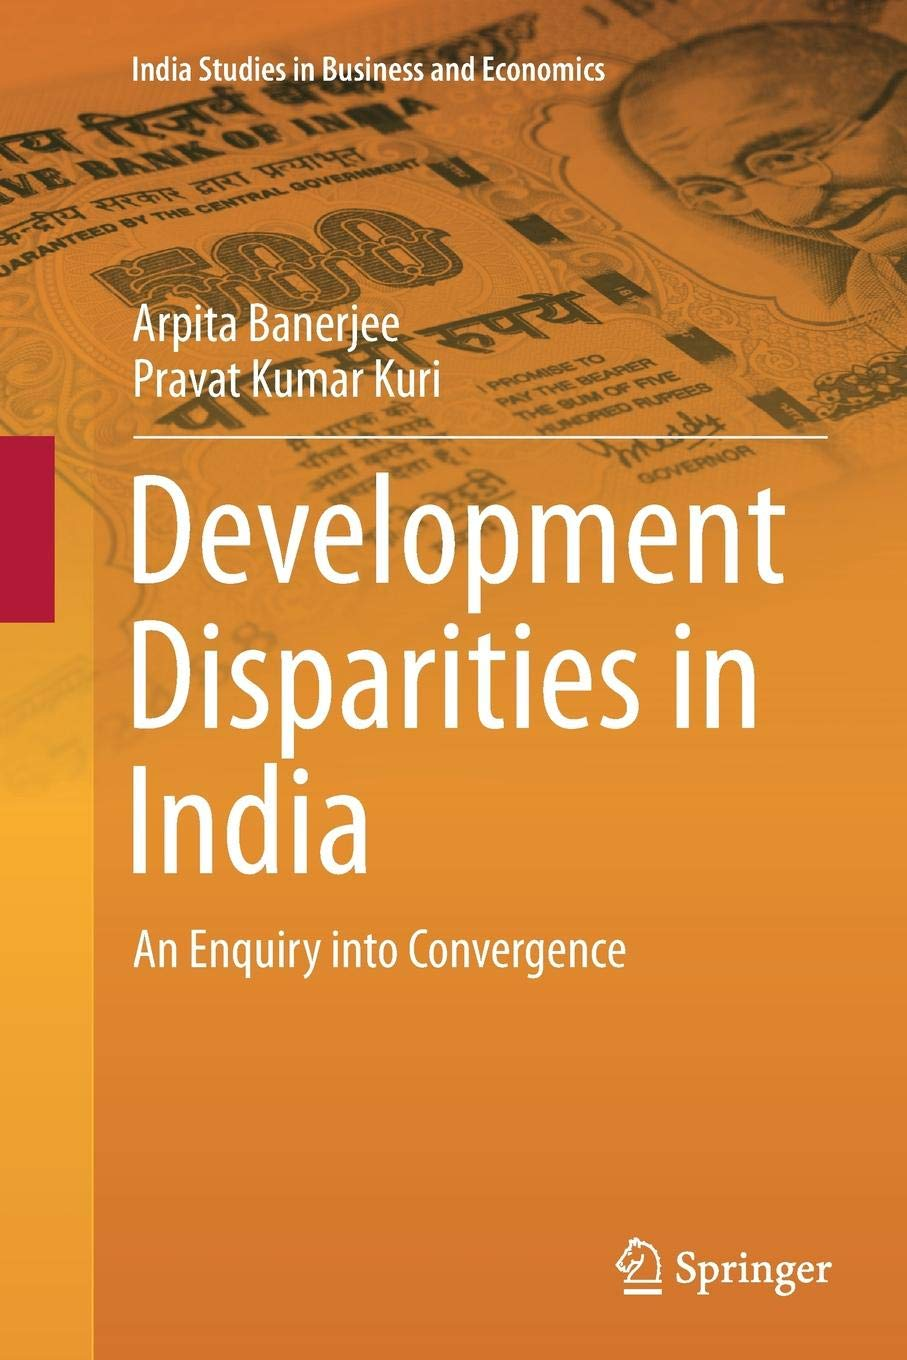 Development Disparities in India: An Enquiry into Convergence